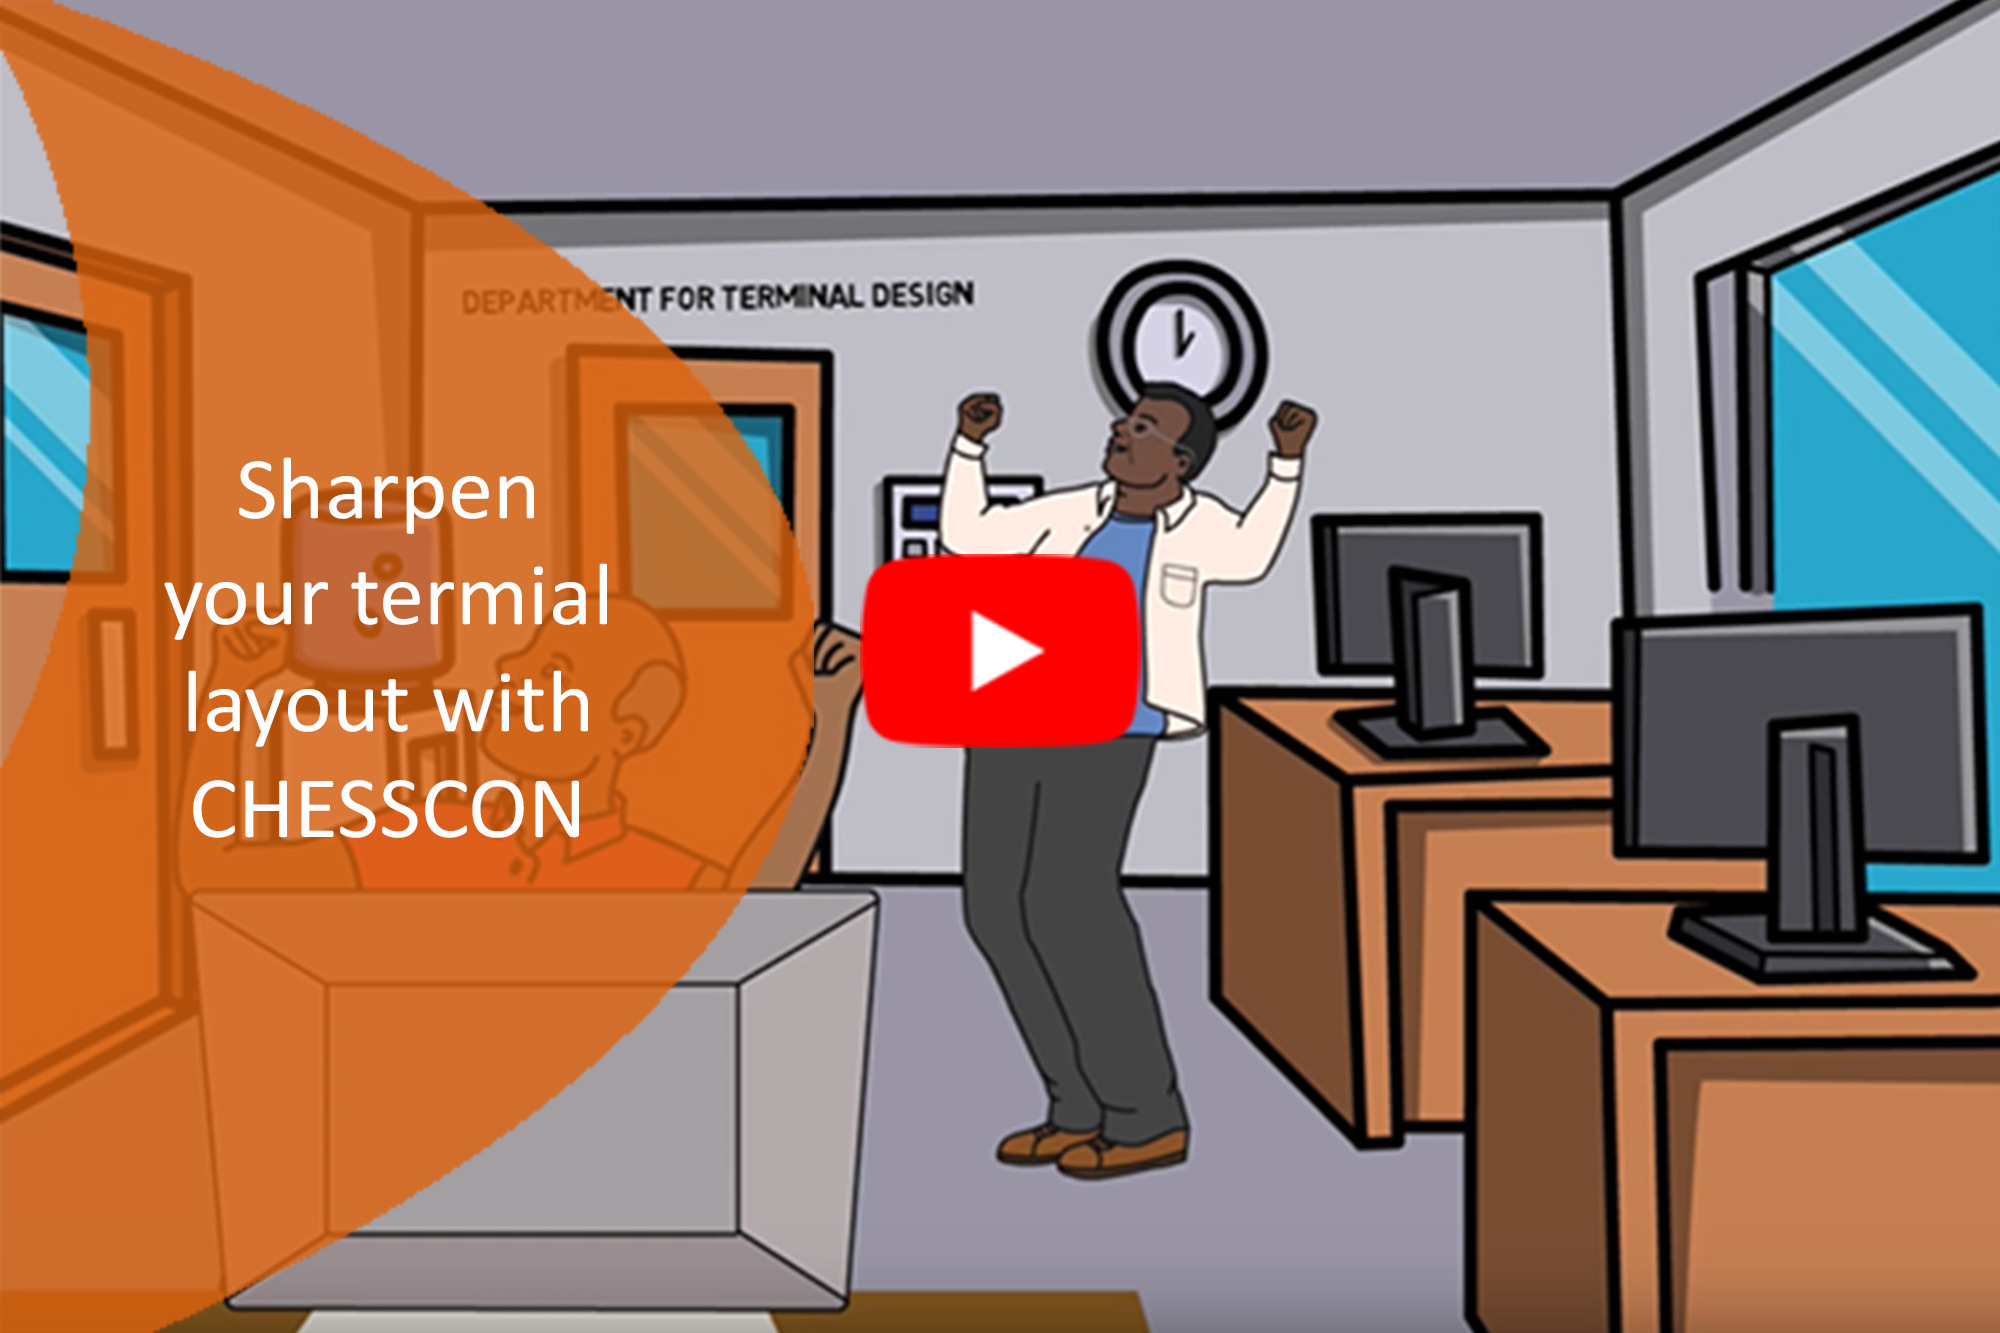 chesscon-terminal-capacity-video-akquinet